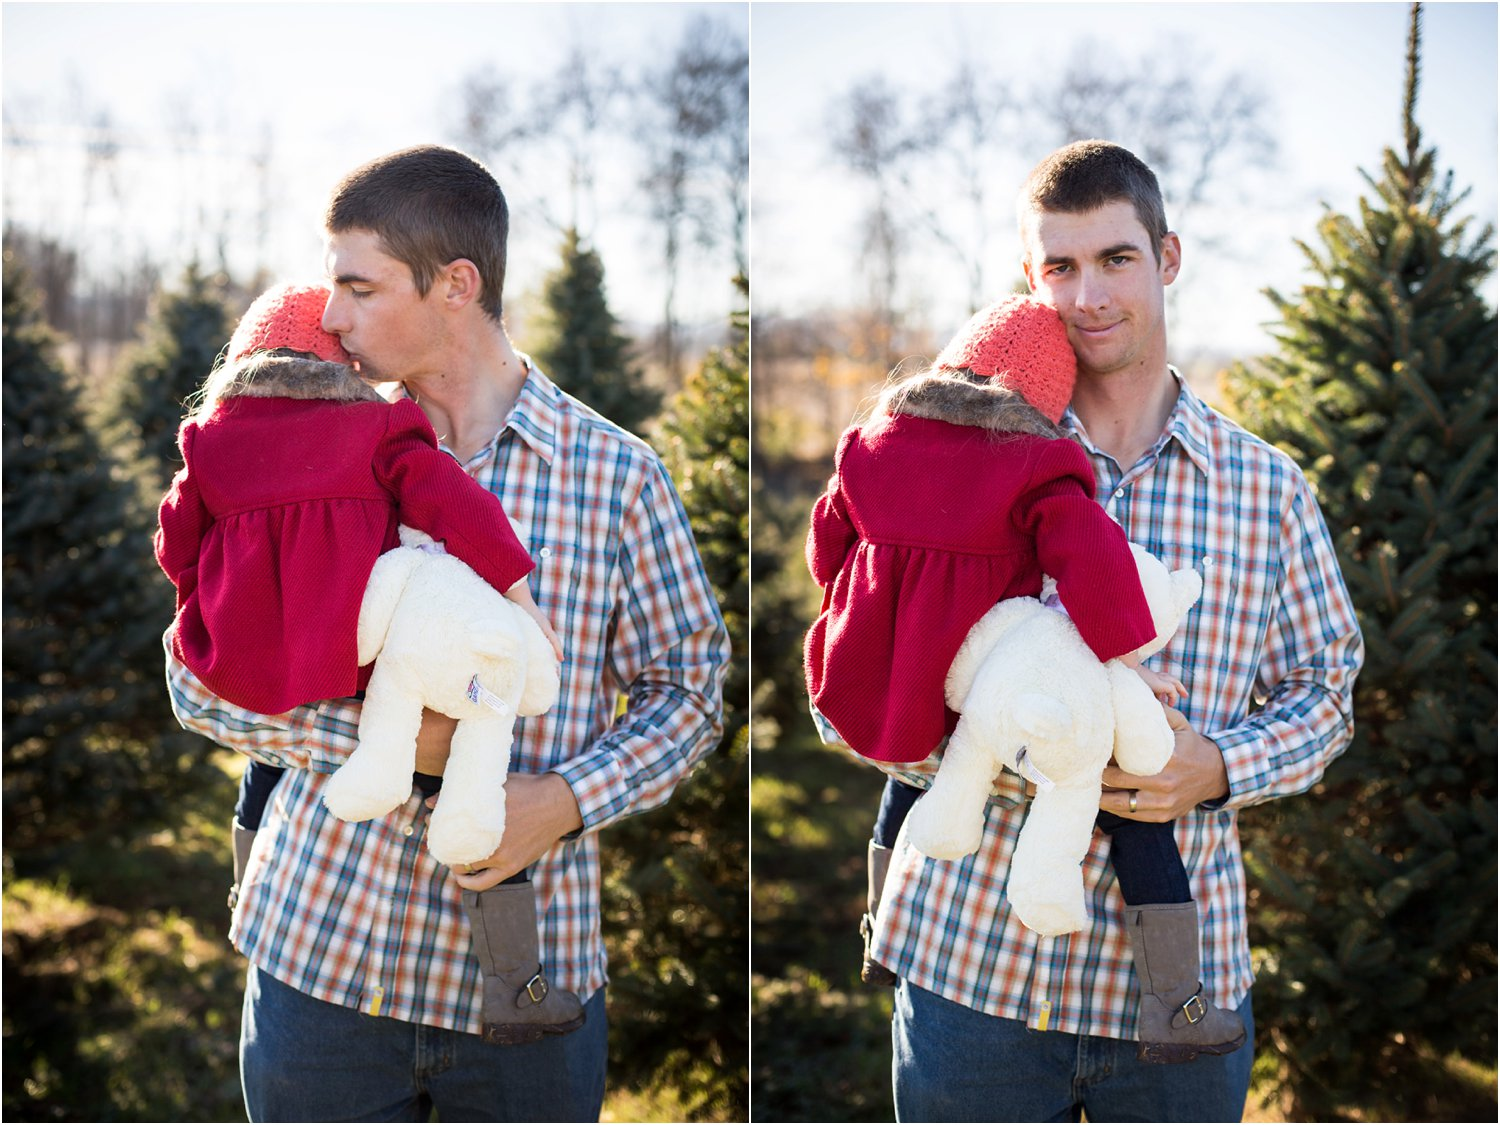 Moose_Apple_Chrismas_Tree_Farm_Family_Portraits_0013.jpg